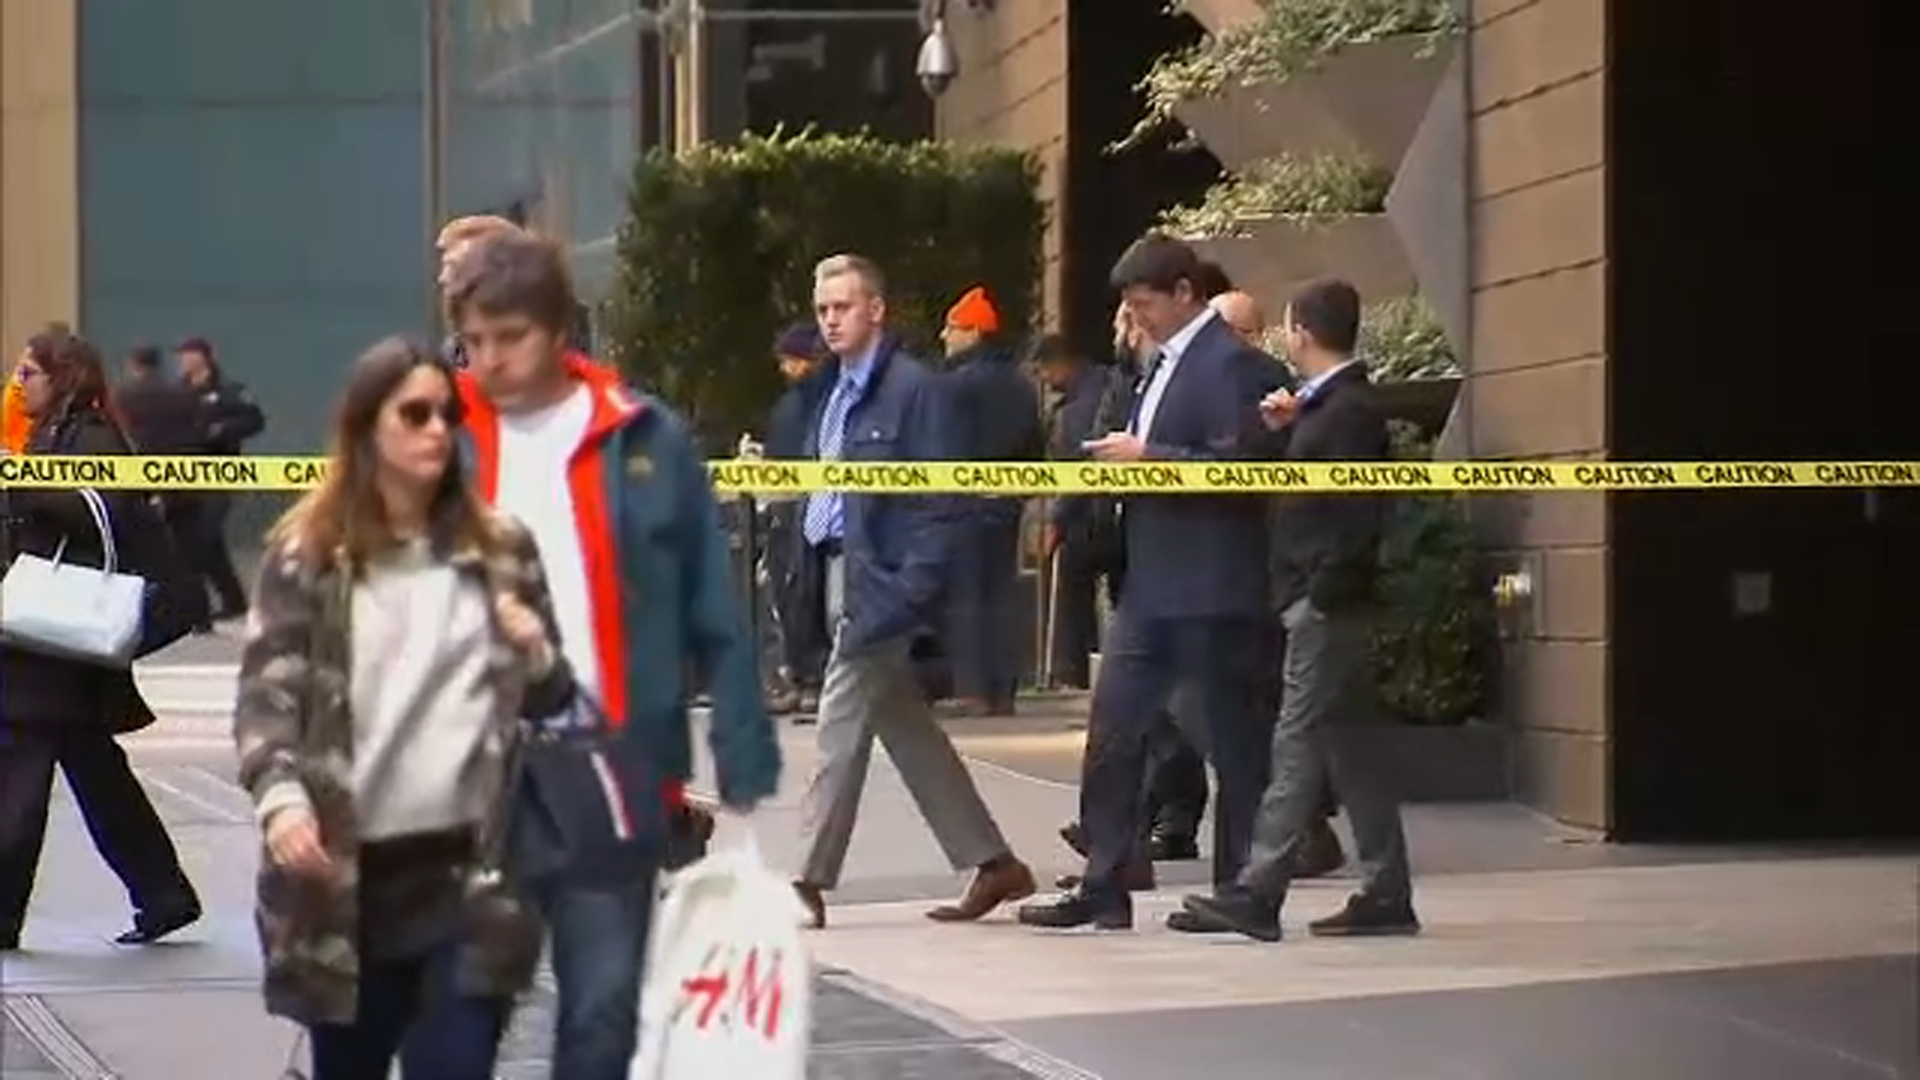 "<div class=""meta image-caption""><div class=""origin-logo origin-image none""><span>none</span></div><span class=""caption-text"">Authorities and pedestrians are shown on the scene of a suspicious package near the CNN building in New York.</span></div>"